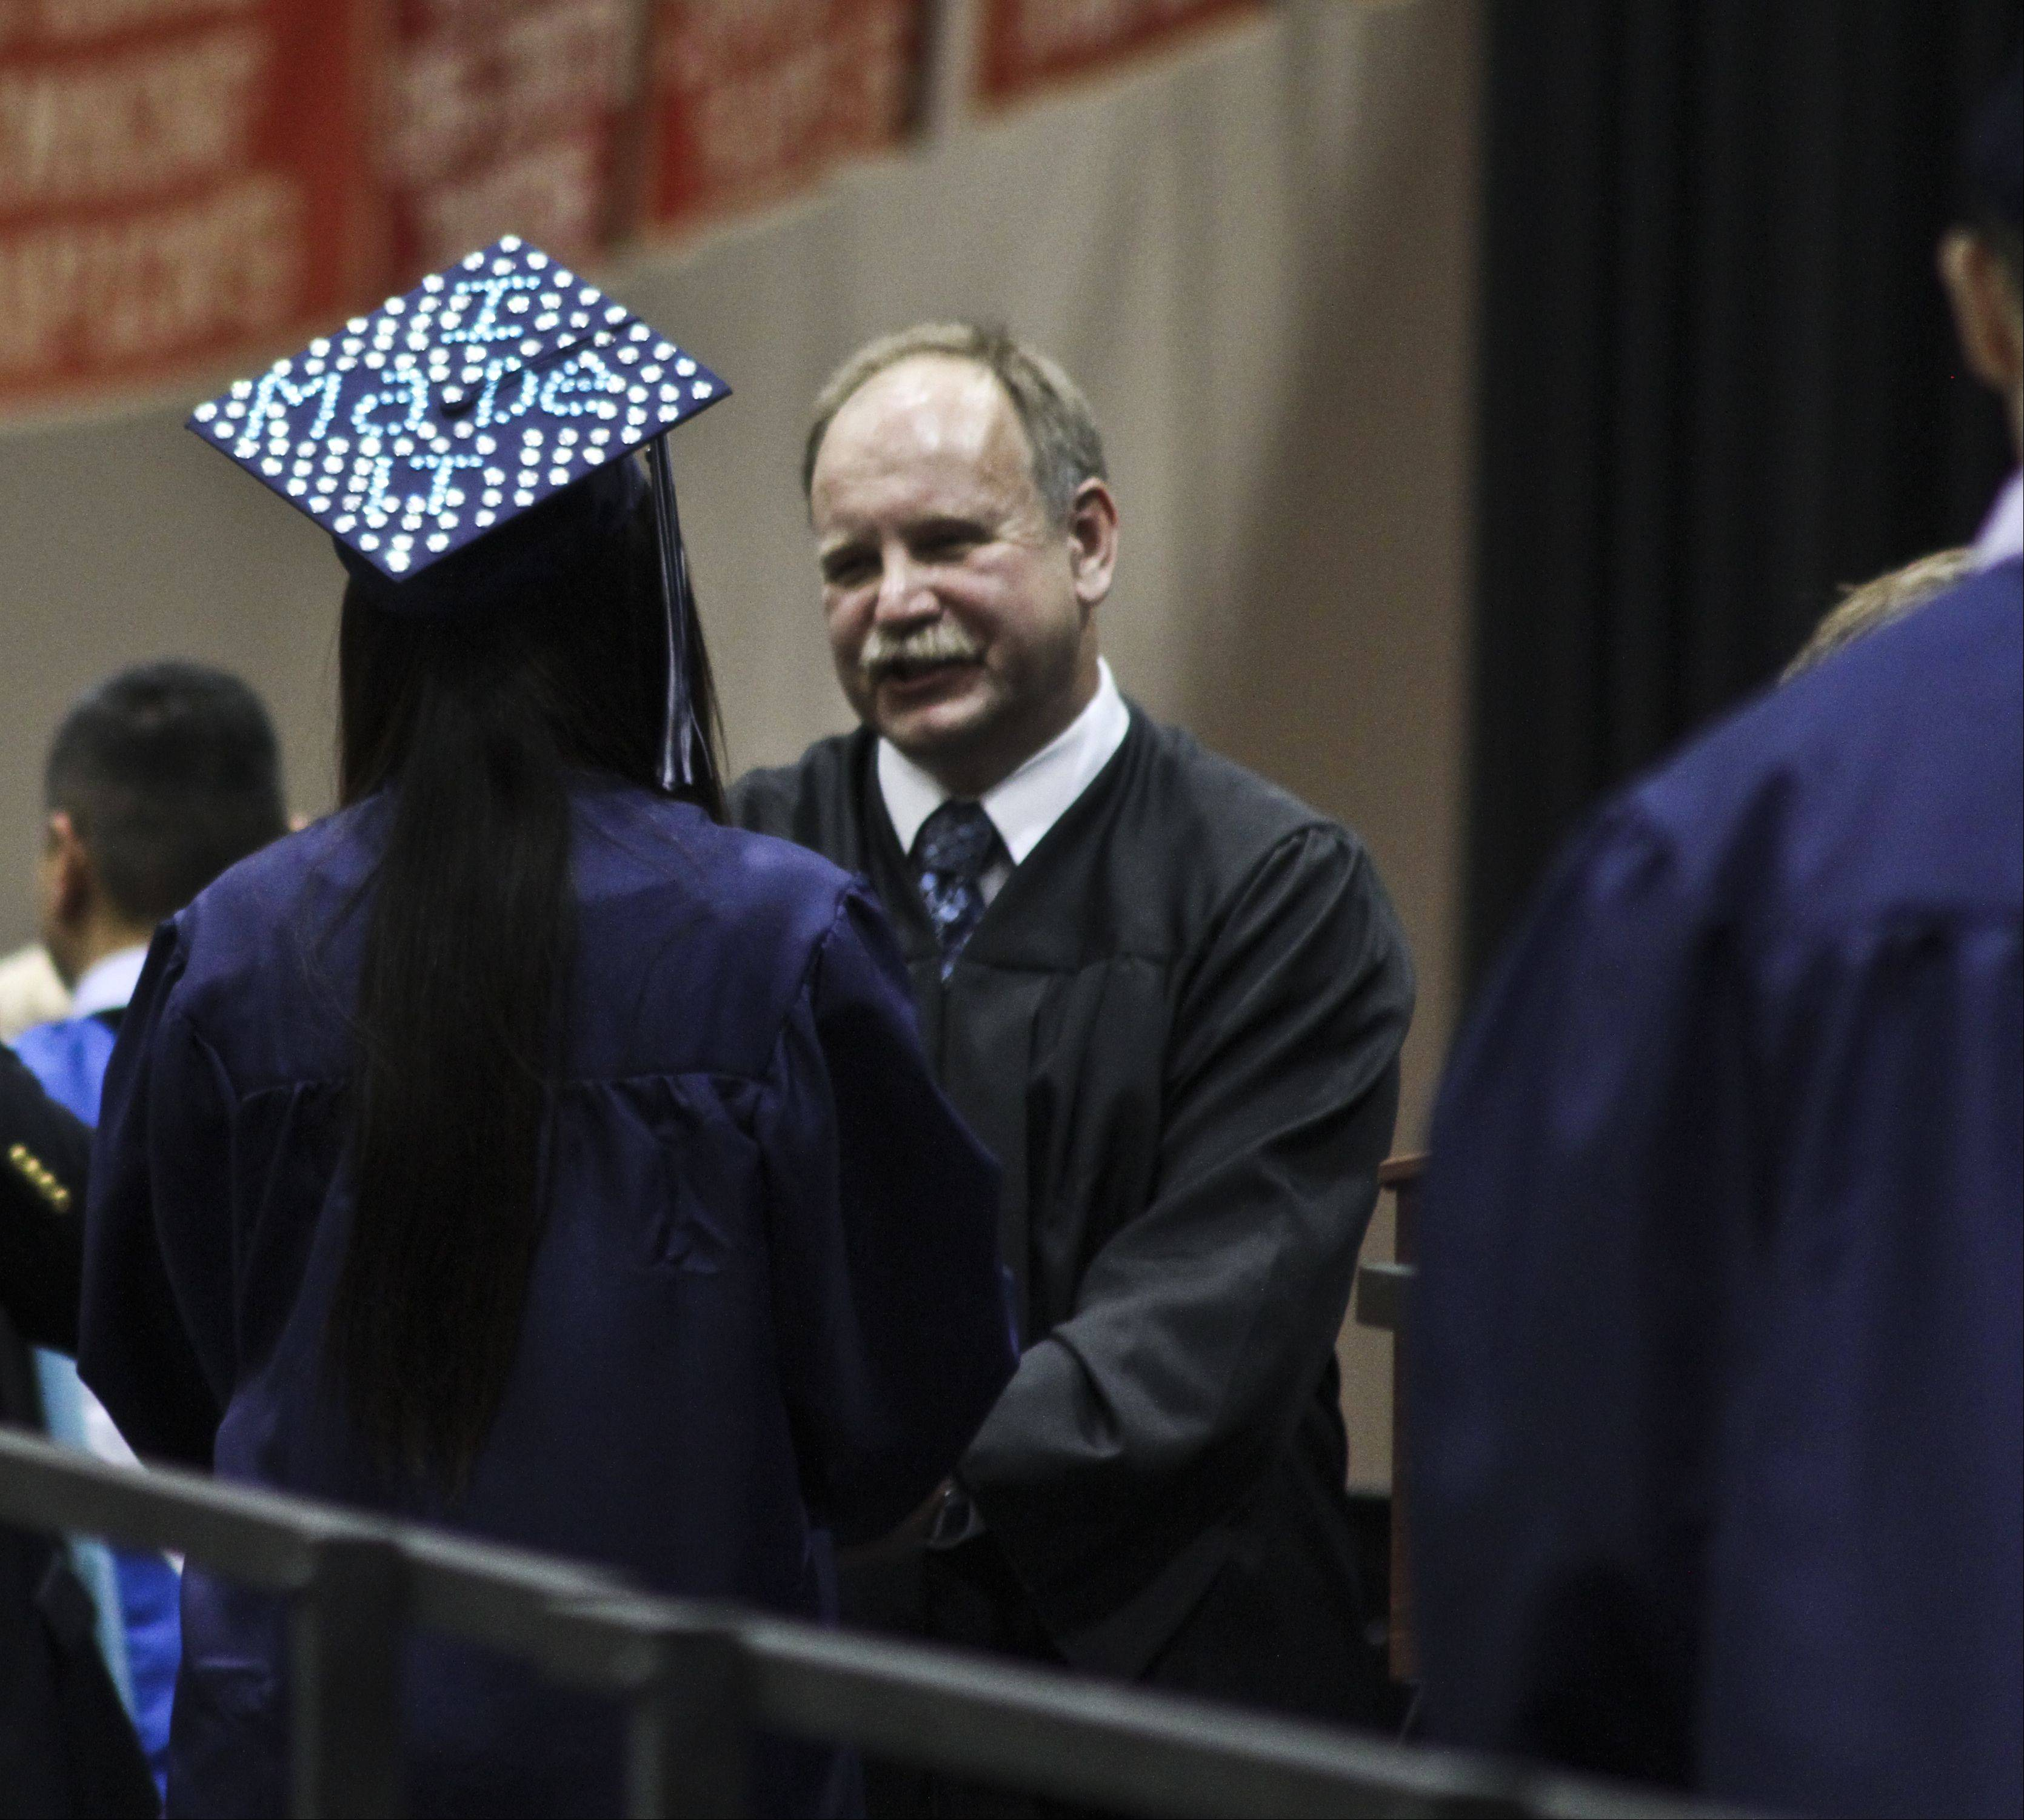 Images from the West Chicago High School graduation on Sunday, June 9 at North Central College in Naperville.